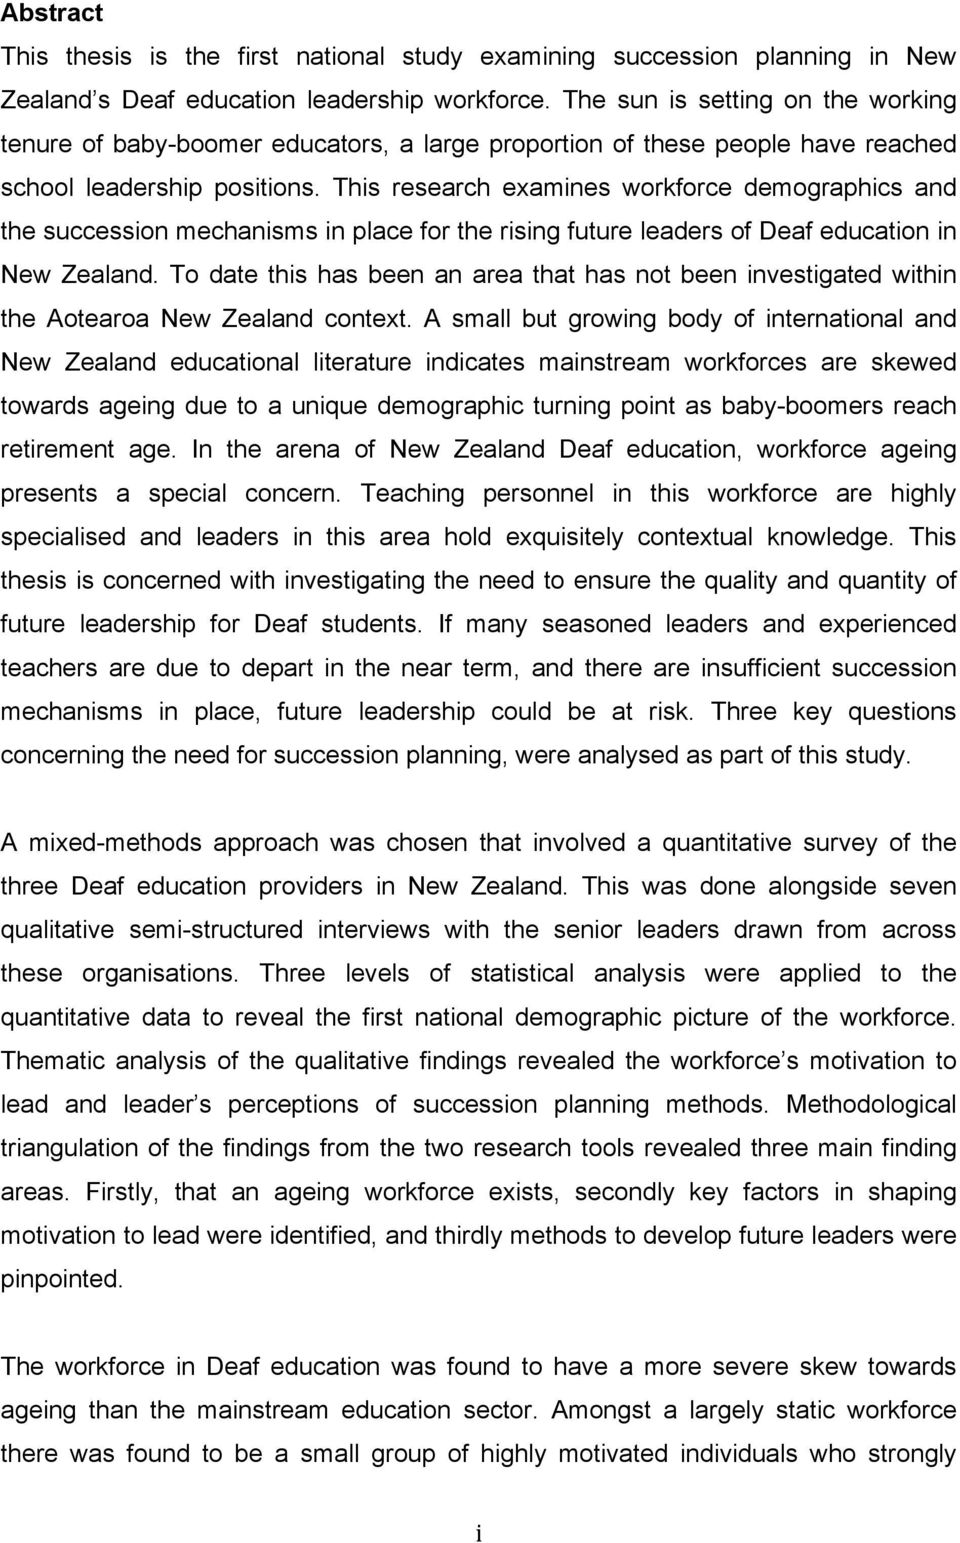 This research examines workforce demographics and the succession mechanisms in place for the rising future leaders of Deaf education in New Zealand.